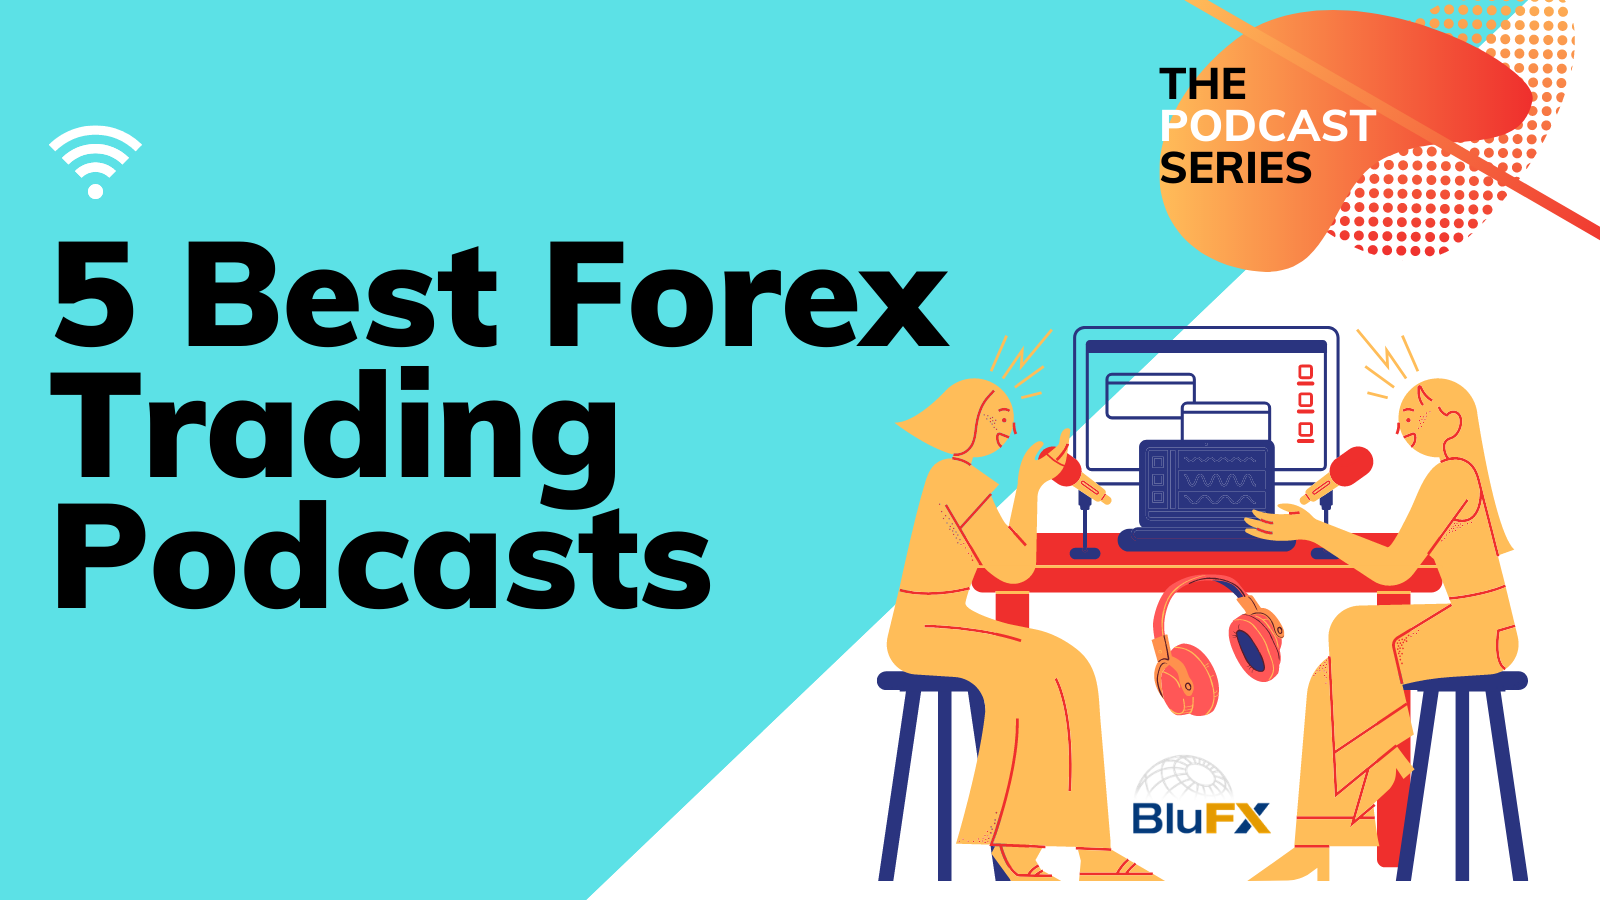 5 Best Forex Trading Podcasts